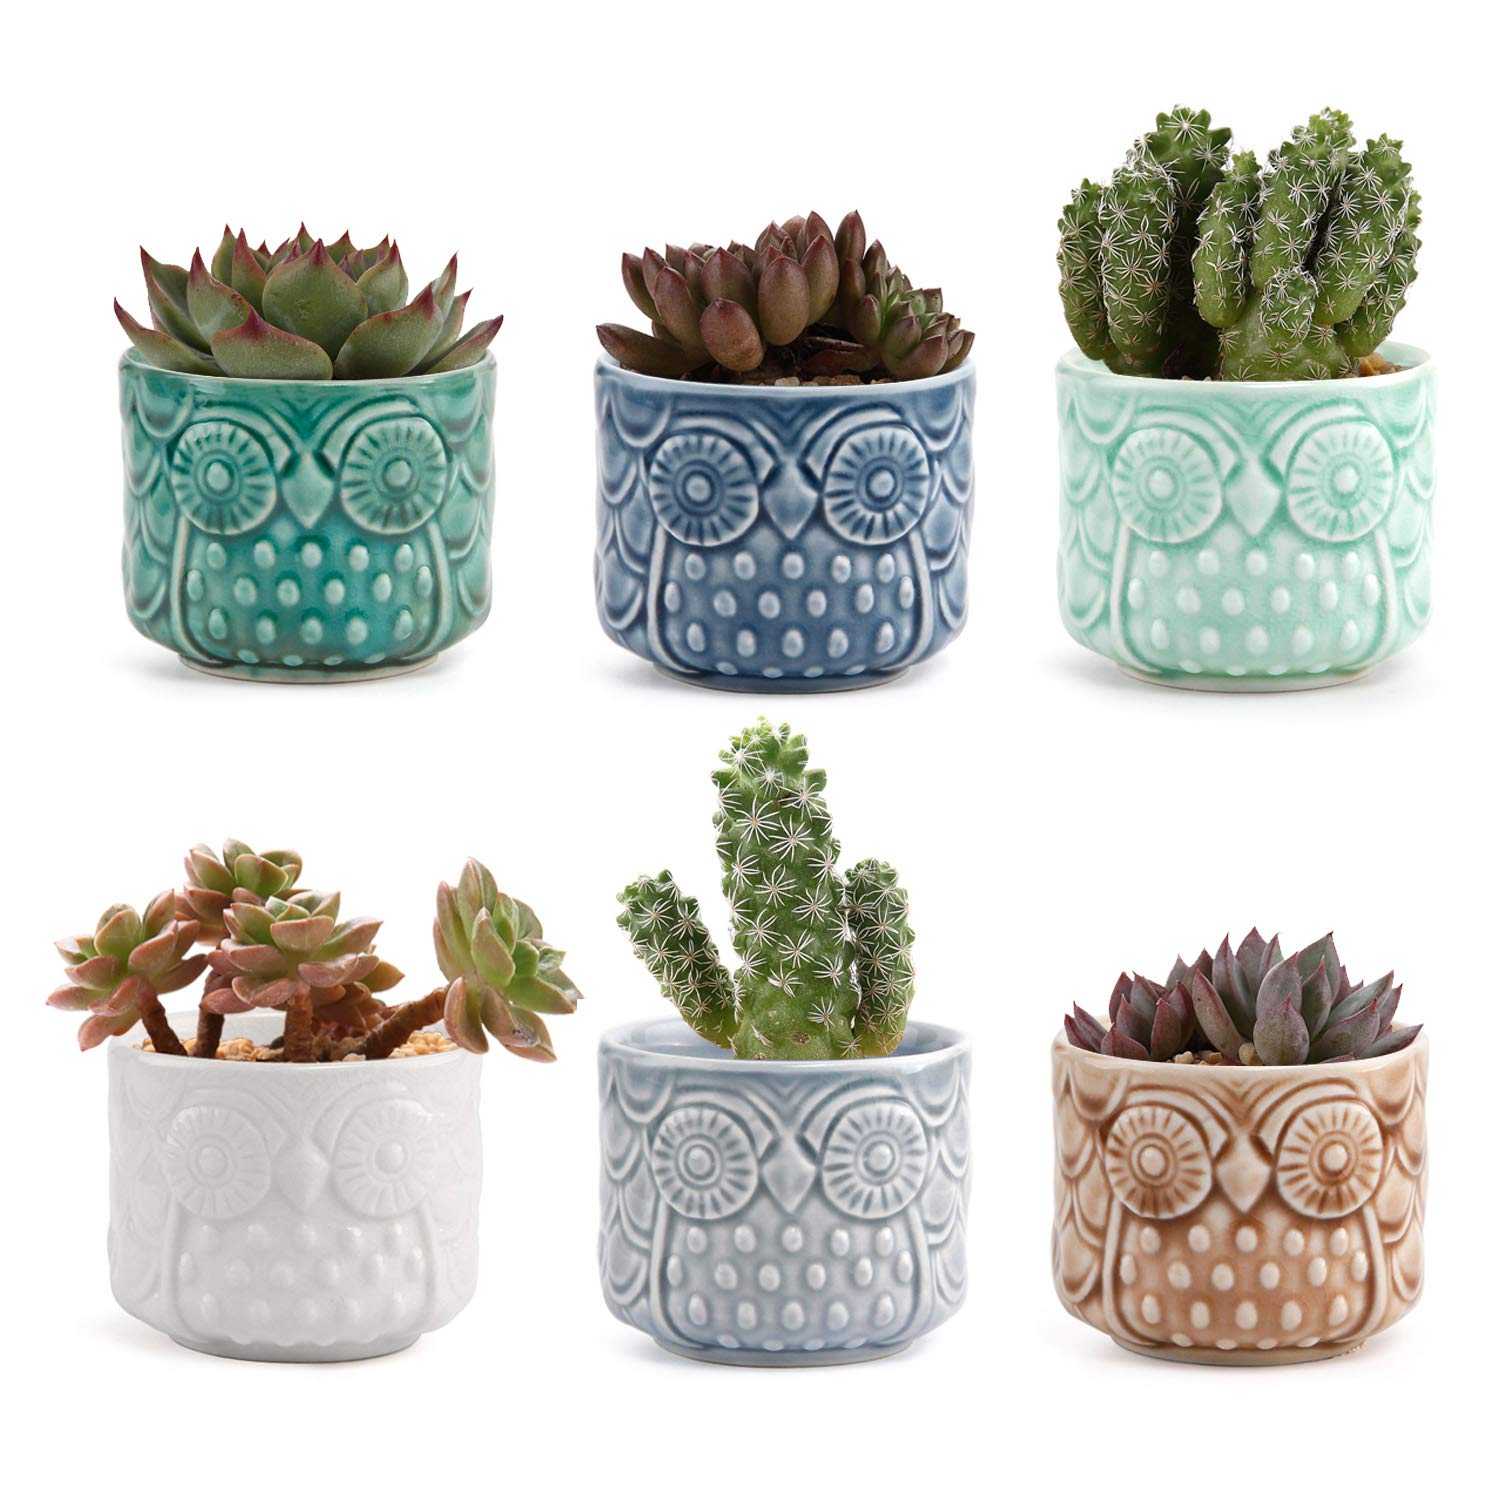 T4U 2.6 Inch Ceramic Owl Succulent Cactus Planter Pot Set Full Color Set of 6, Home and Office Decoration Desktop Windowsill Bonsai Pots Gift for Gardener Wedding Birthday Mother's Day by T4U